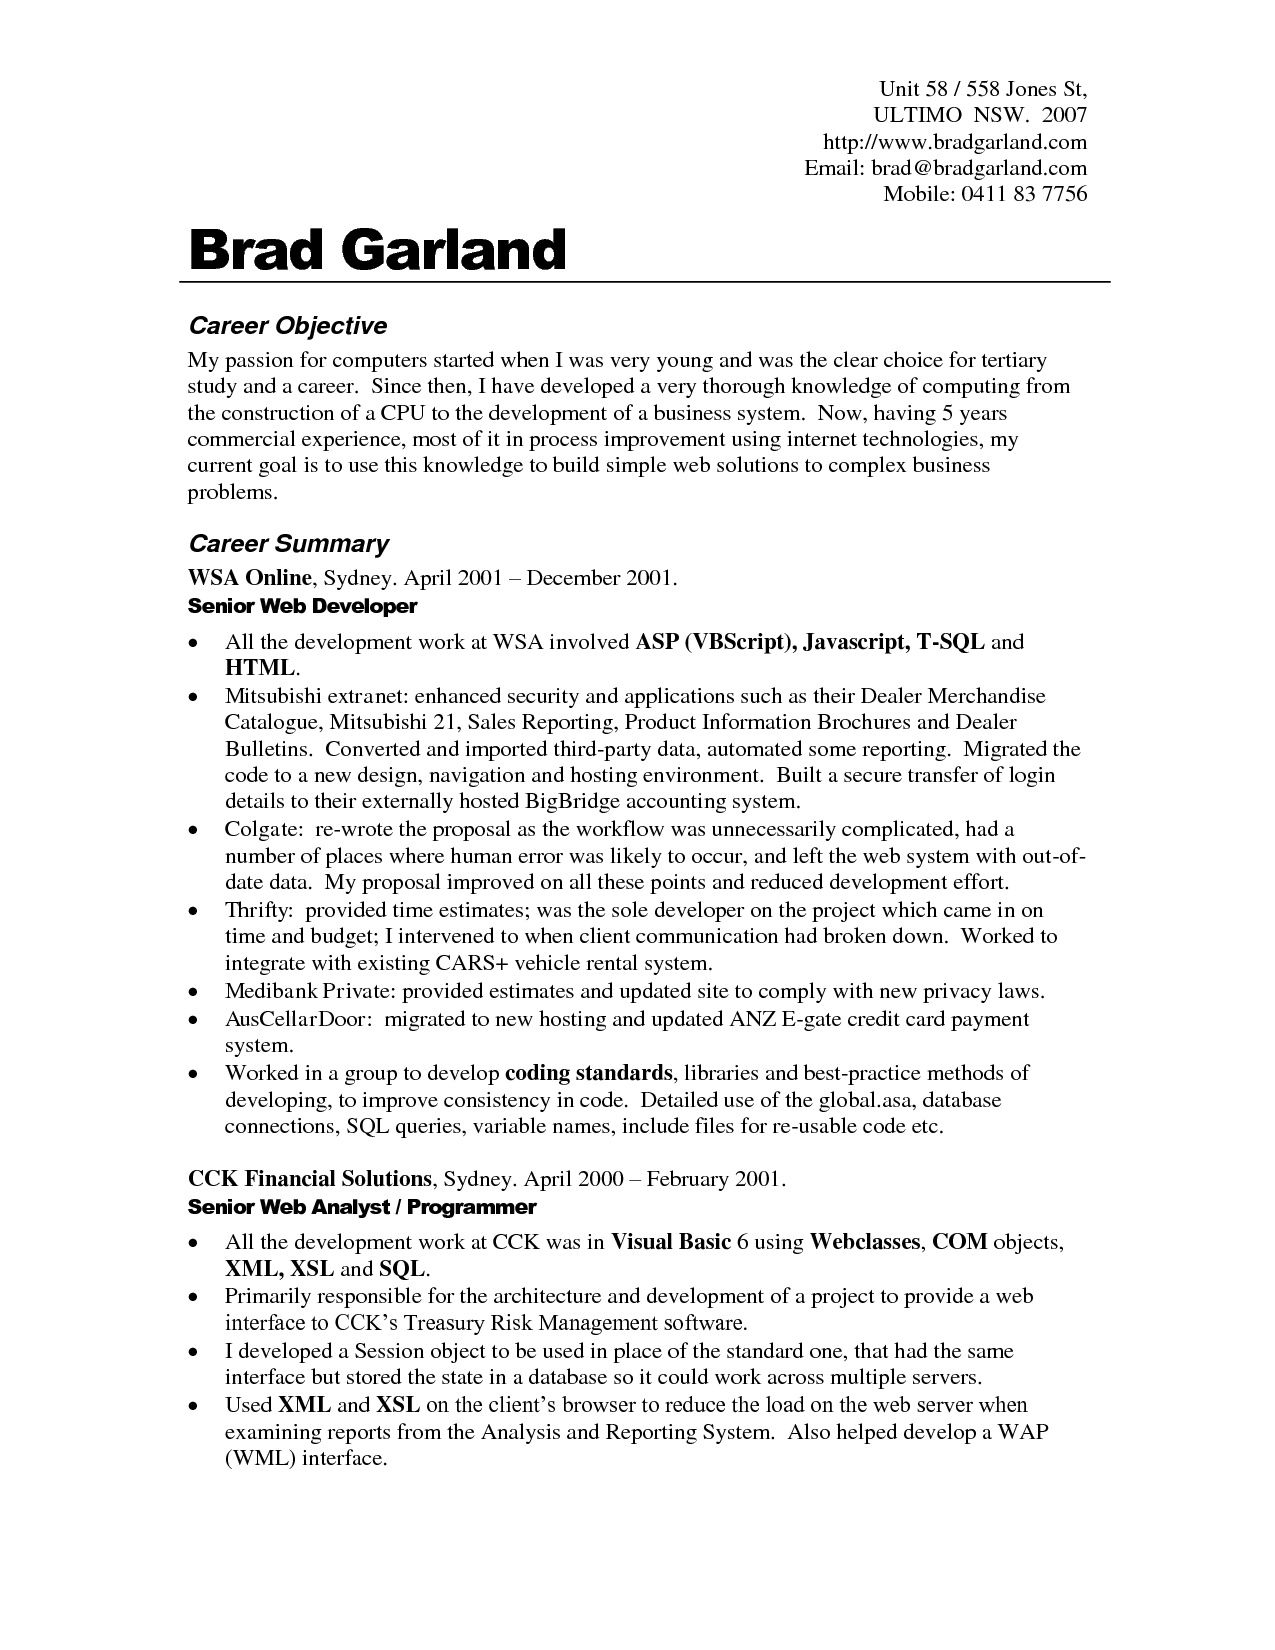 resume samples career objective - Resume Objectives For It Professionals